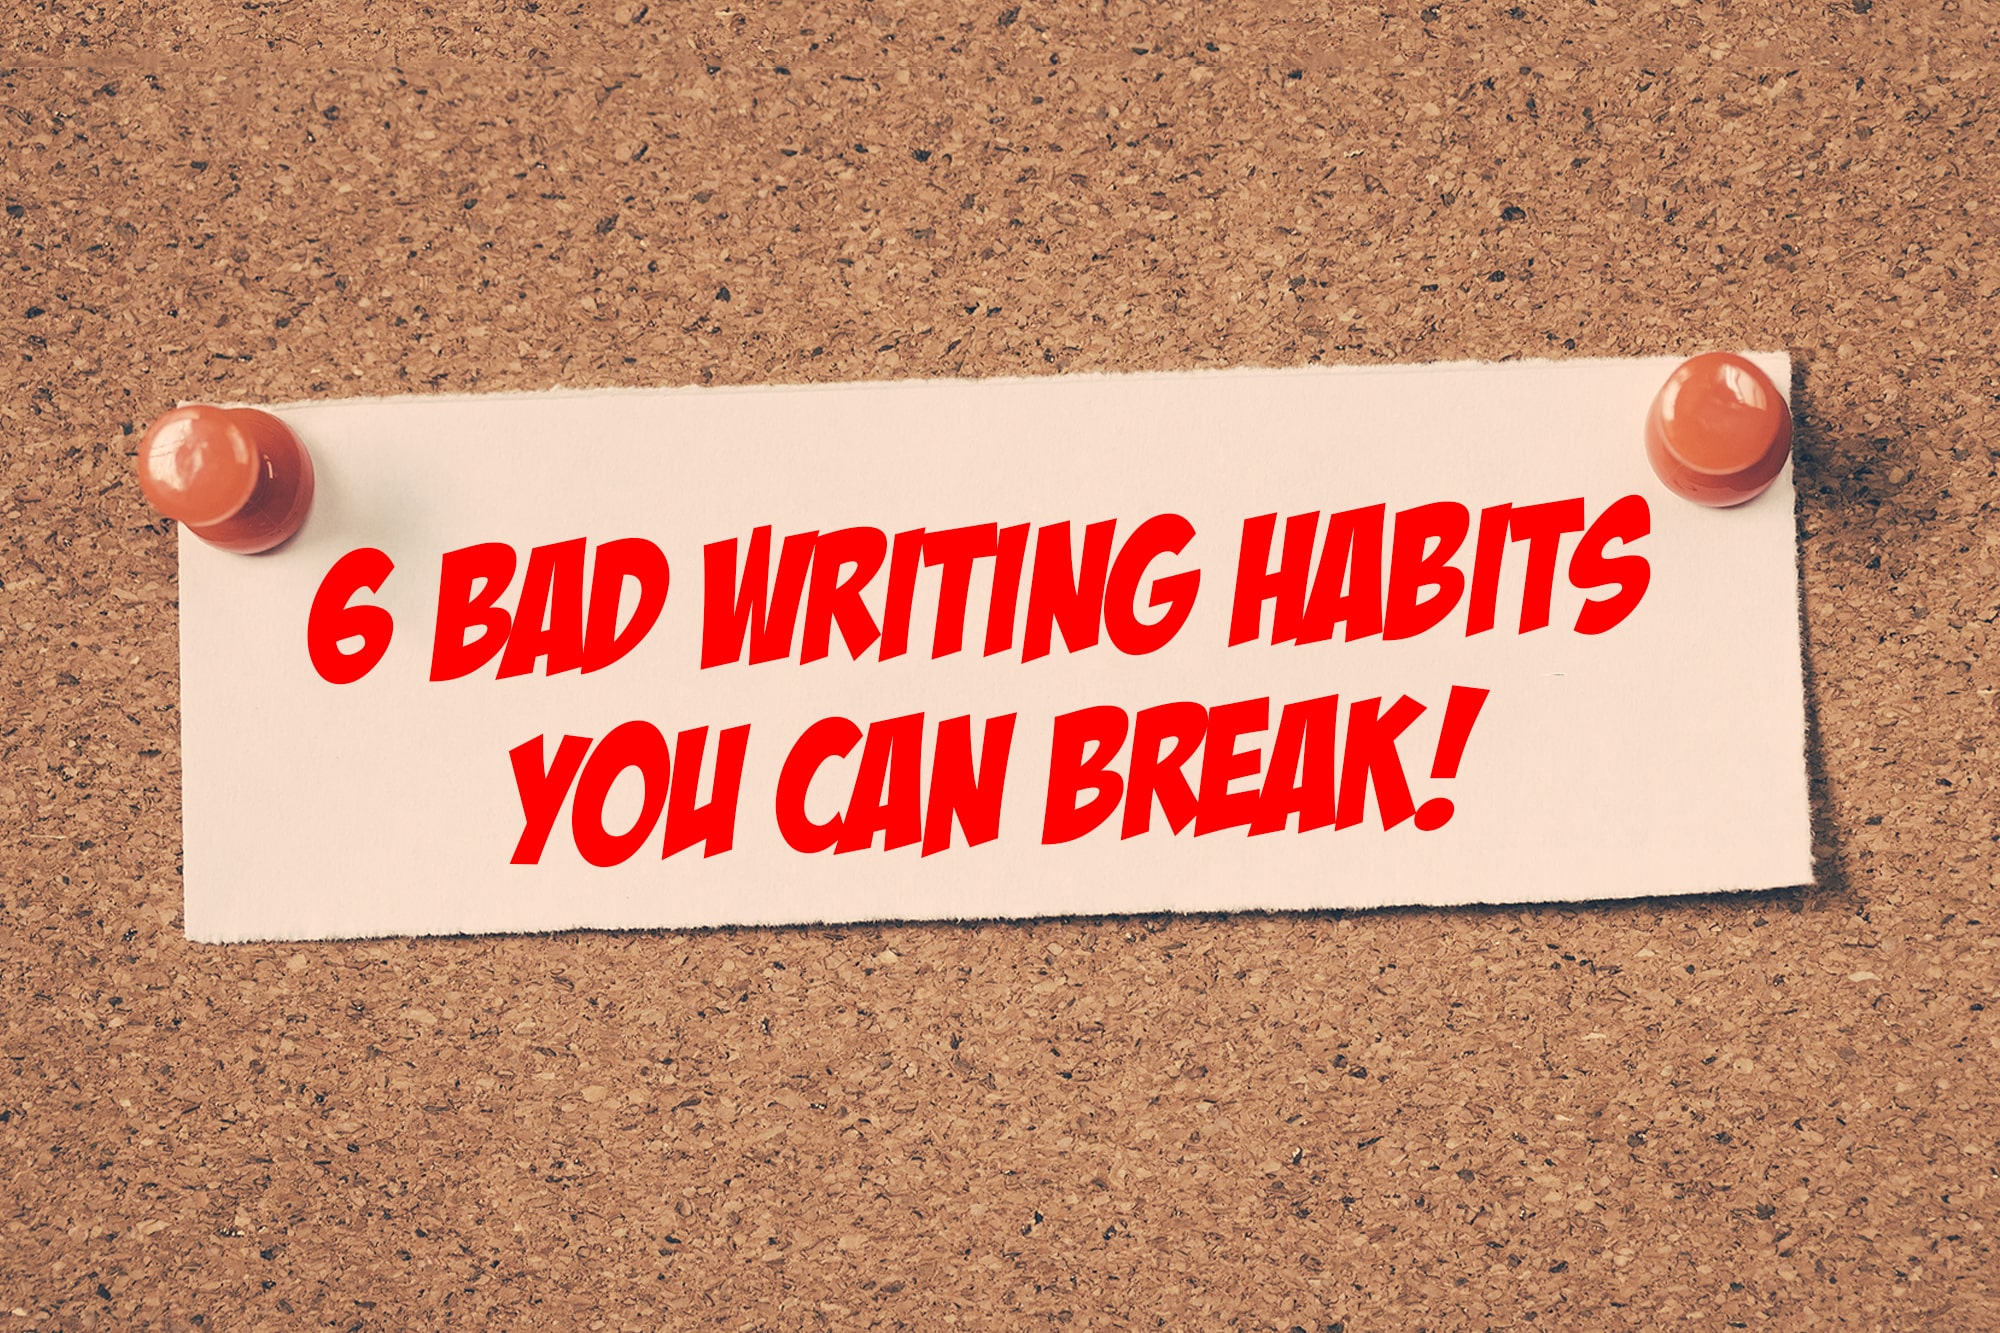 bad writing habits you can break